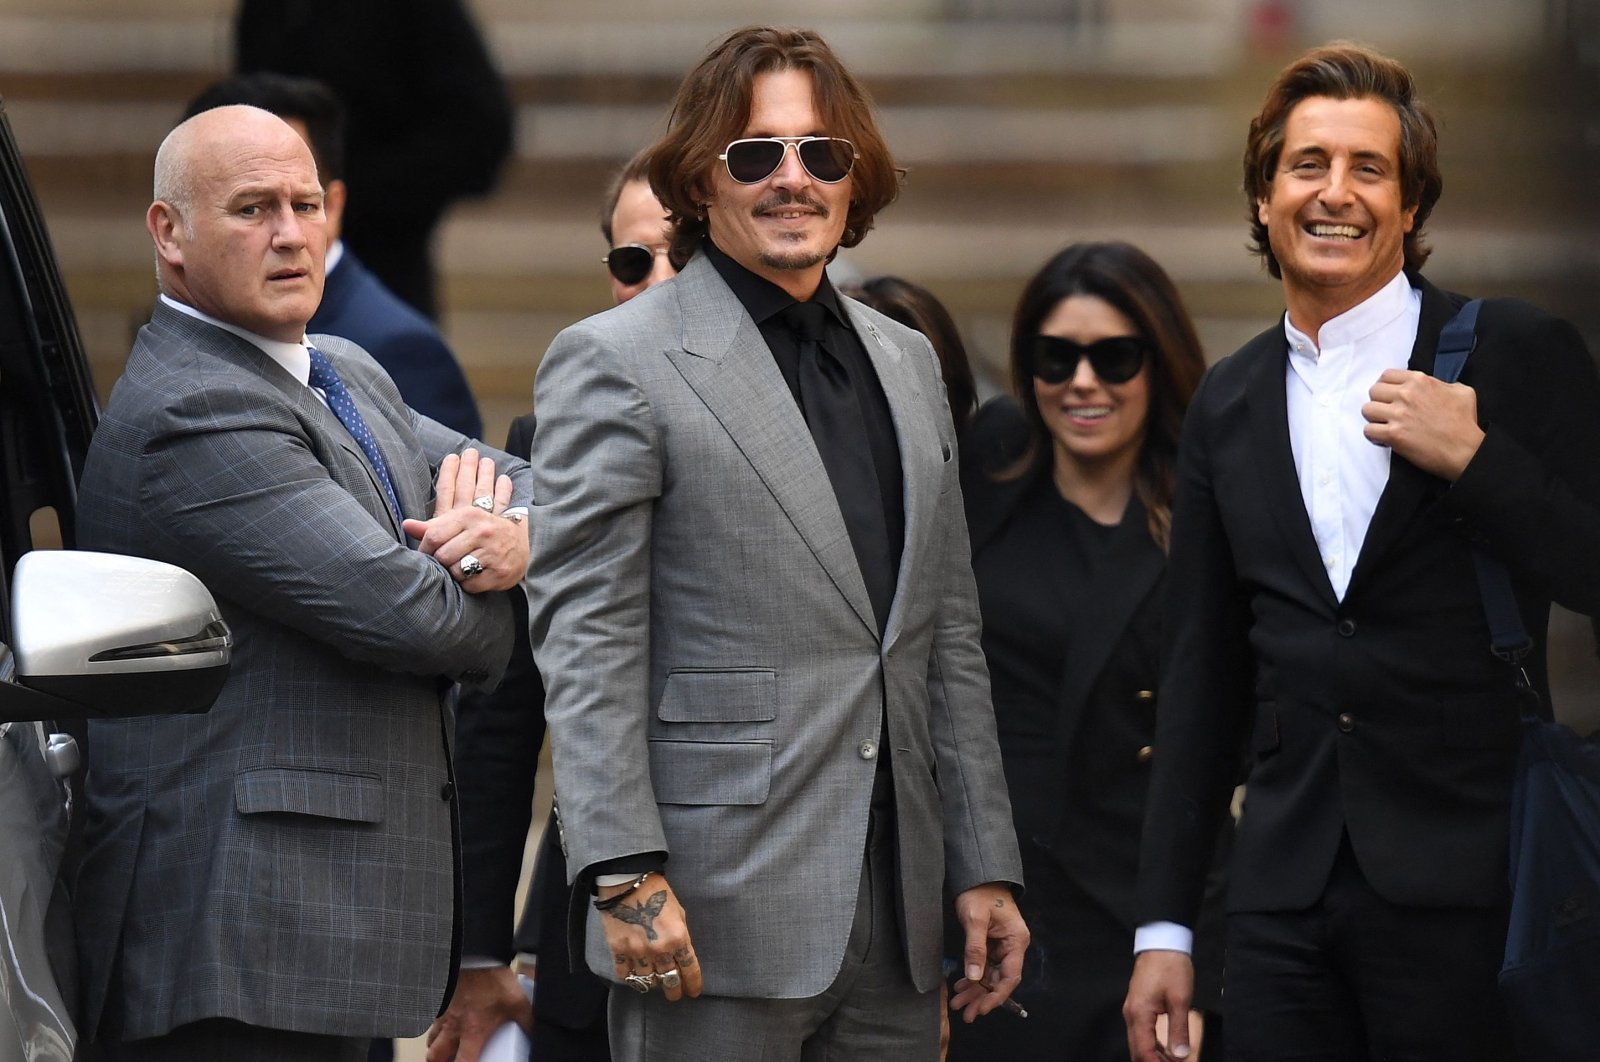 In this file photo taken on July 28, 2020 actor Johnny Depp gestures as he leaves the High Court after the final day of his libel trial against News Group Newspapers (NGN), in London. (AFP Photo)